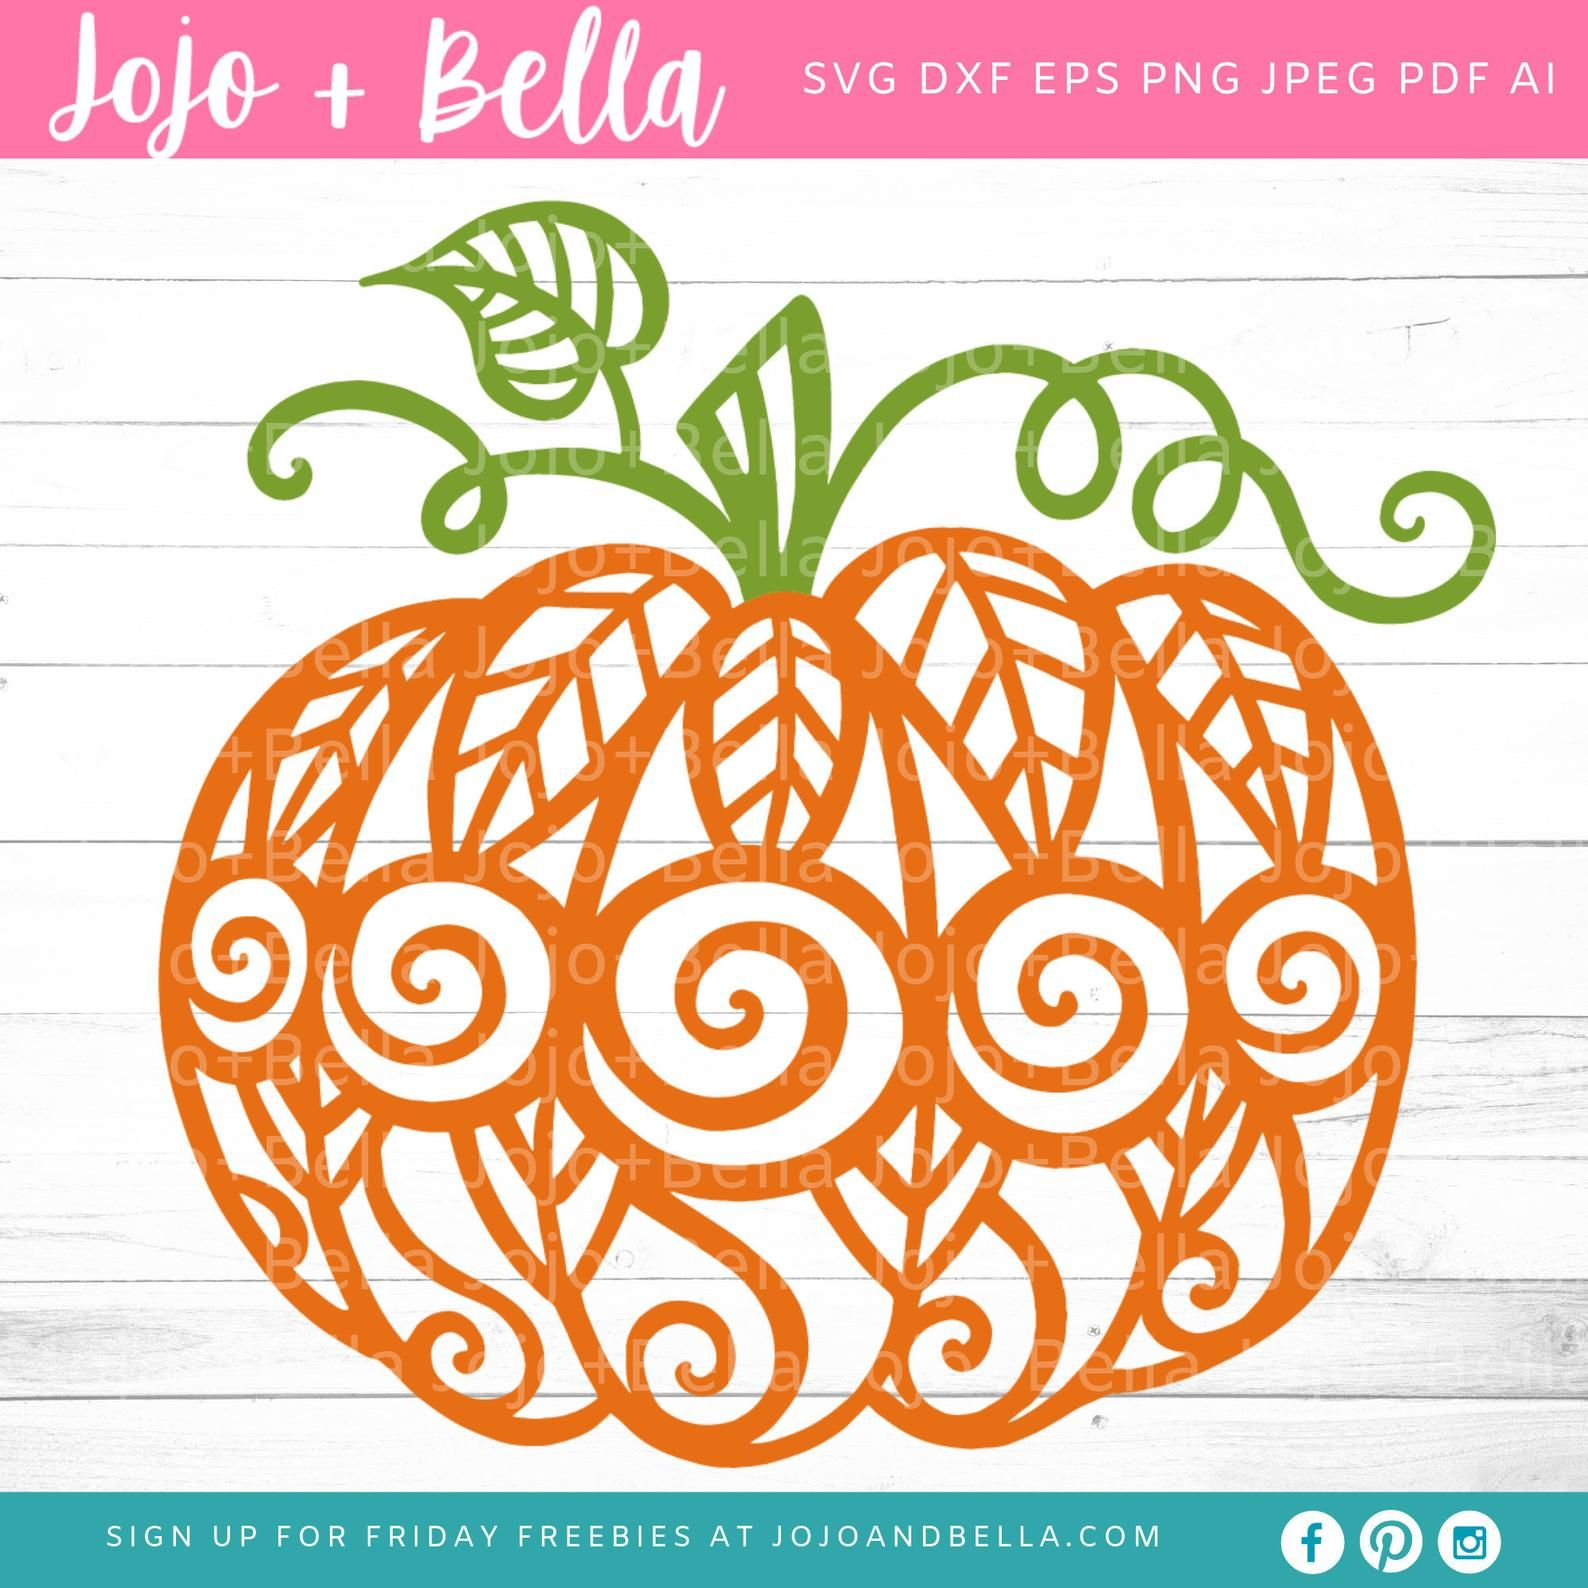 Mandala Pumpkin Svg Pumpkin Svg, Swirly Pumpkin SVG